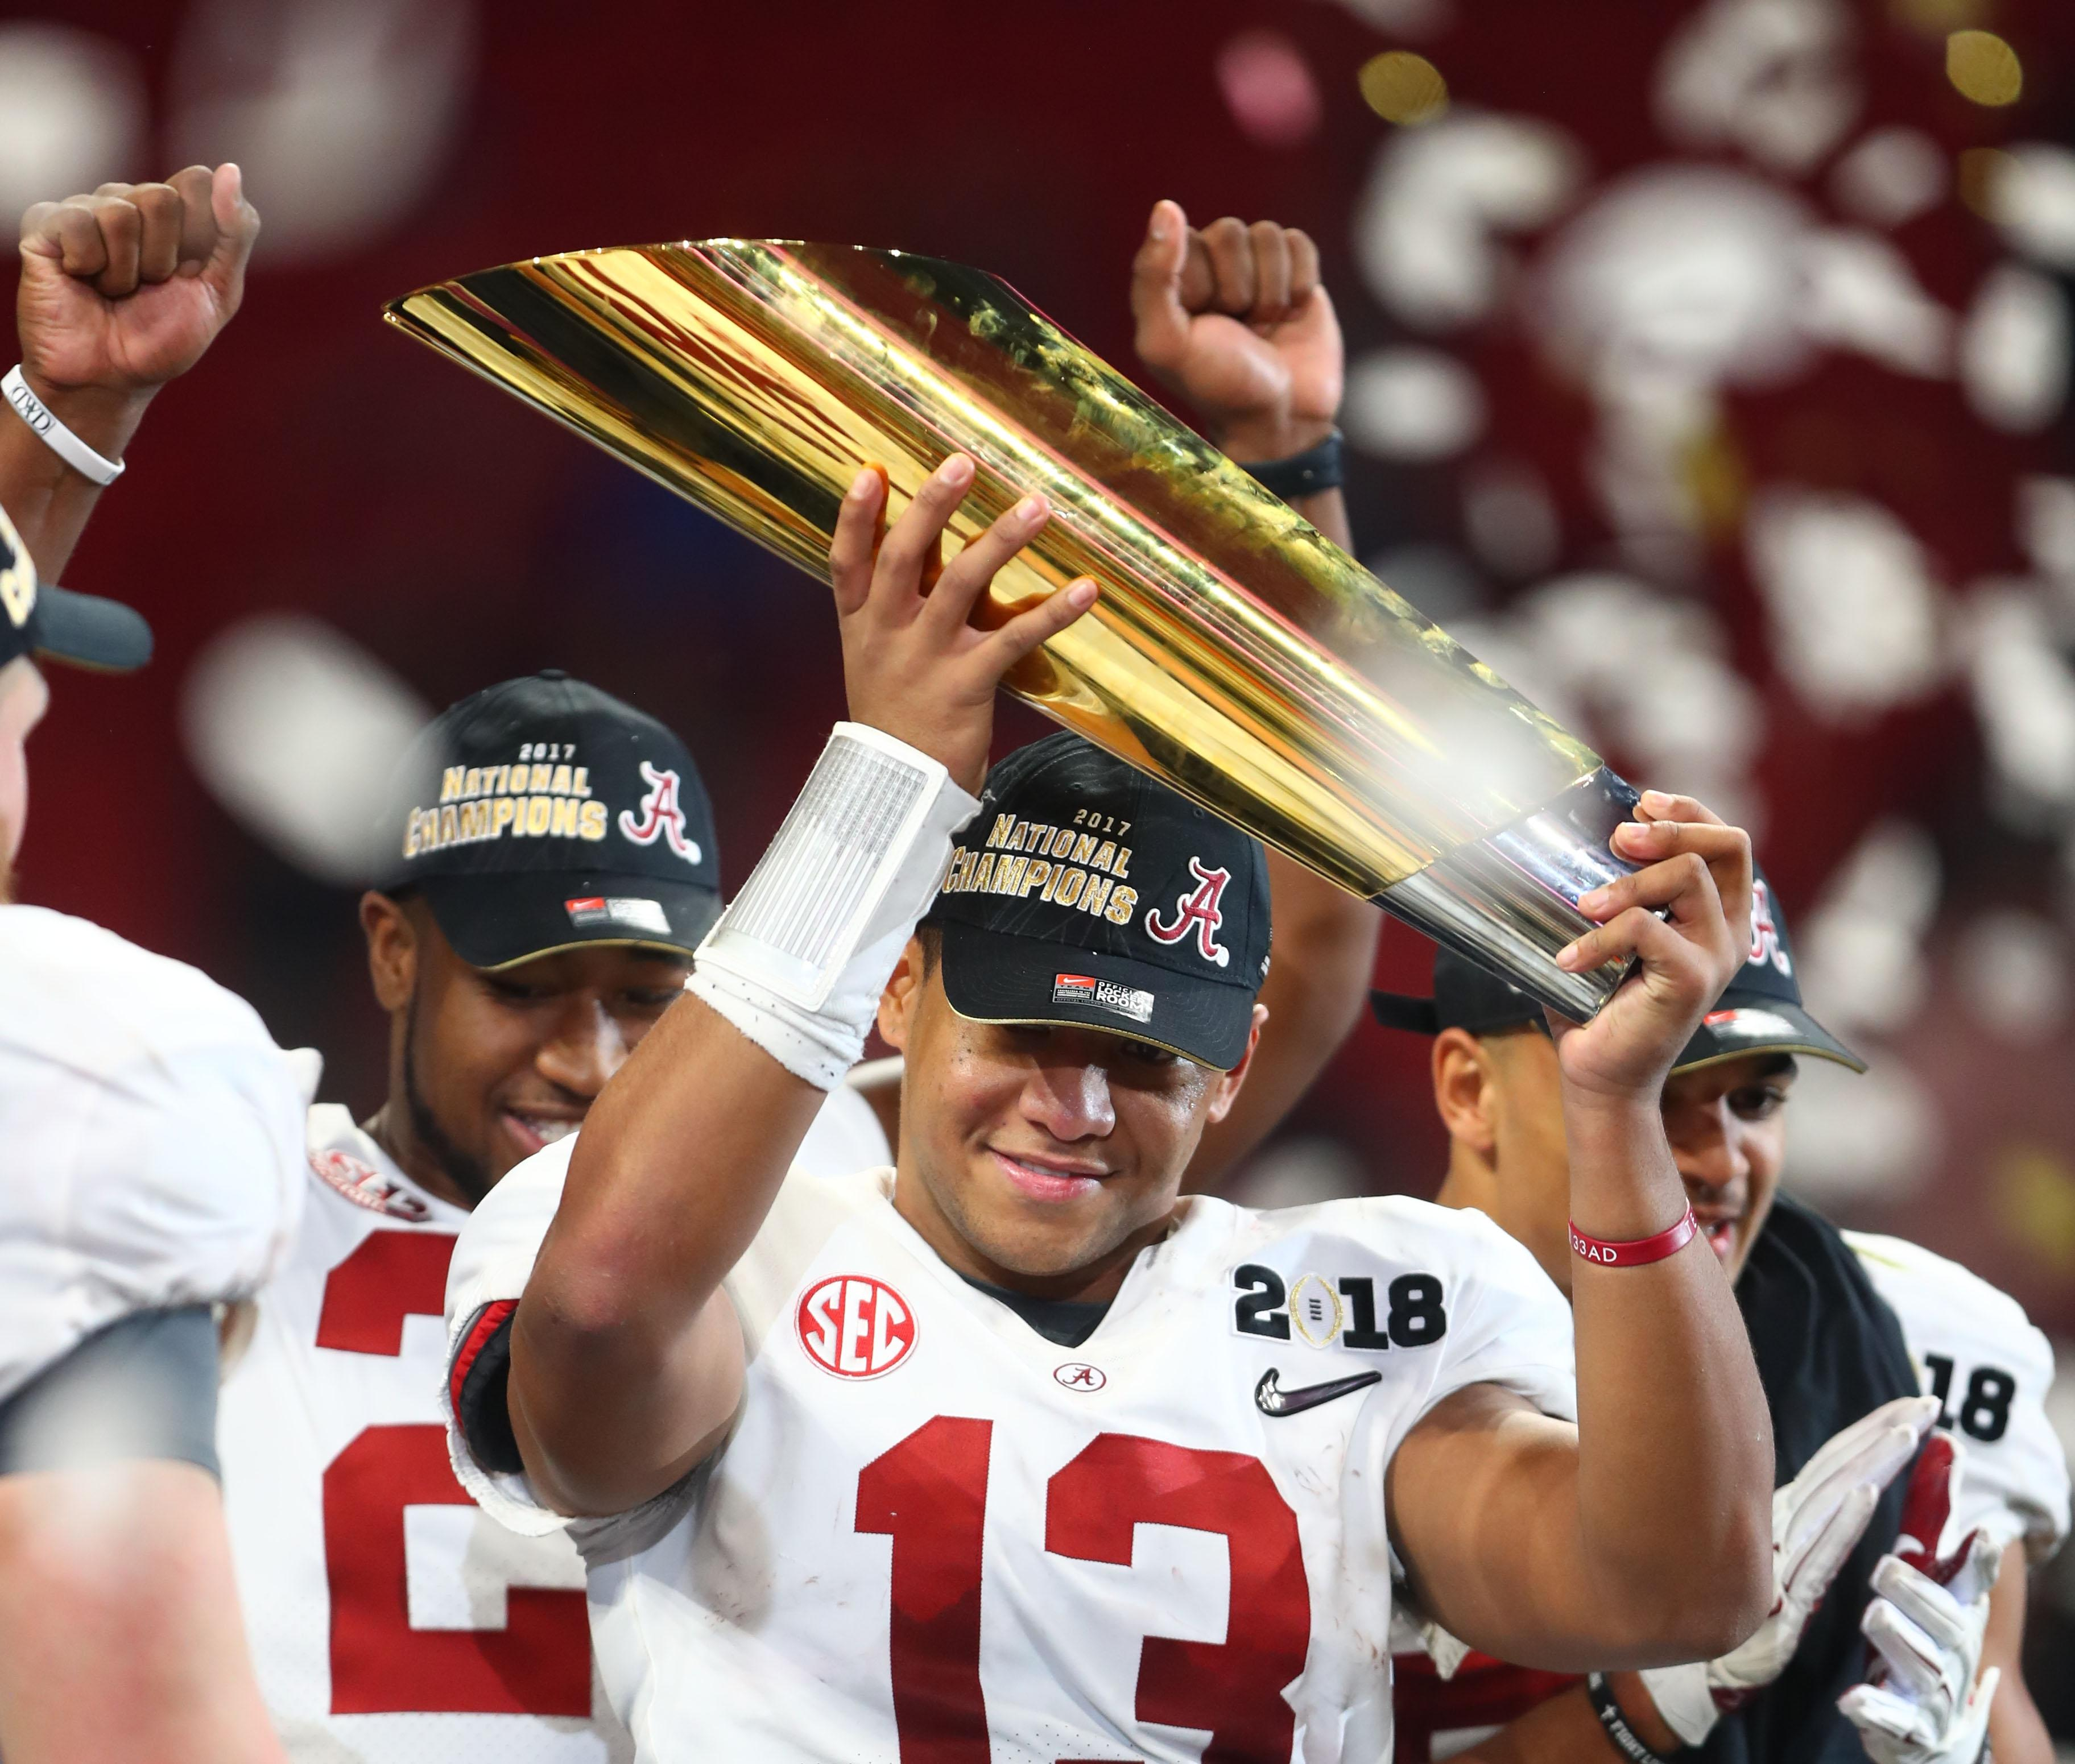 Alabama QB Tua Tagovailoa helped his team make one of the most memorable comebacks of the year in the CFP national championship game against Georgia.